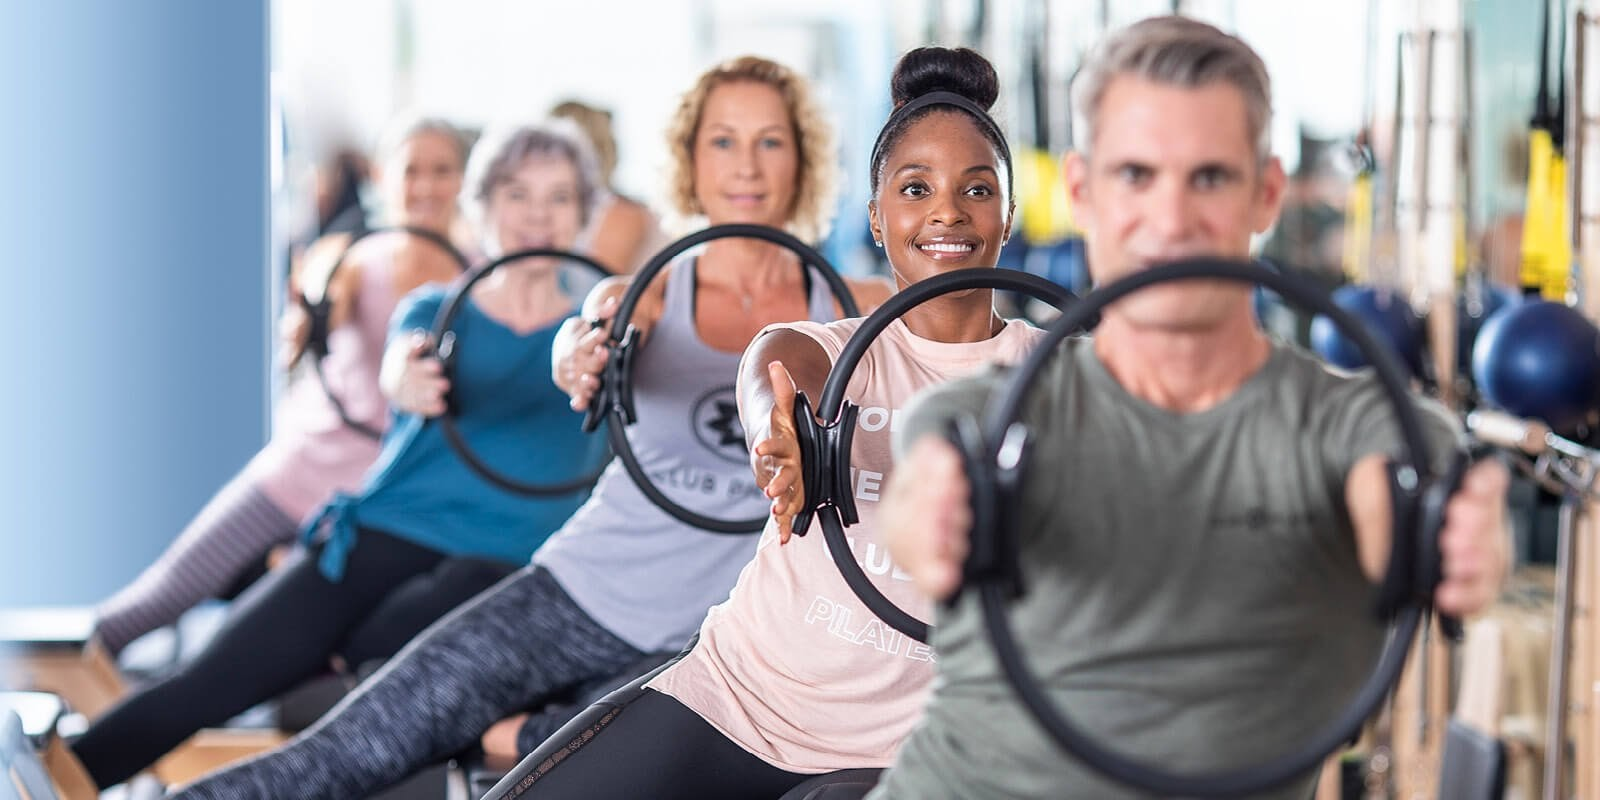 A line of people using pilates equipment for their arms.